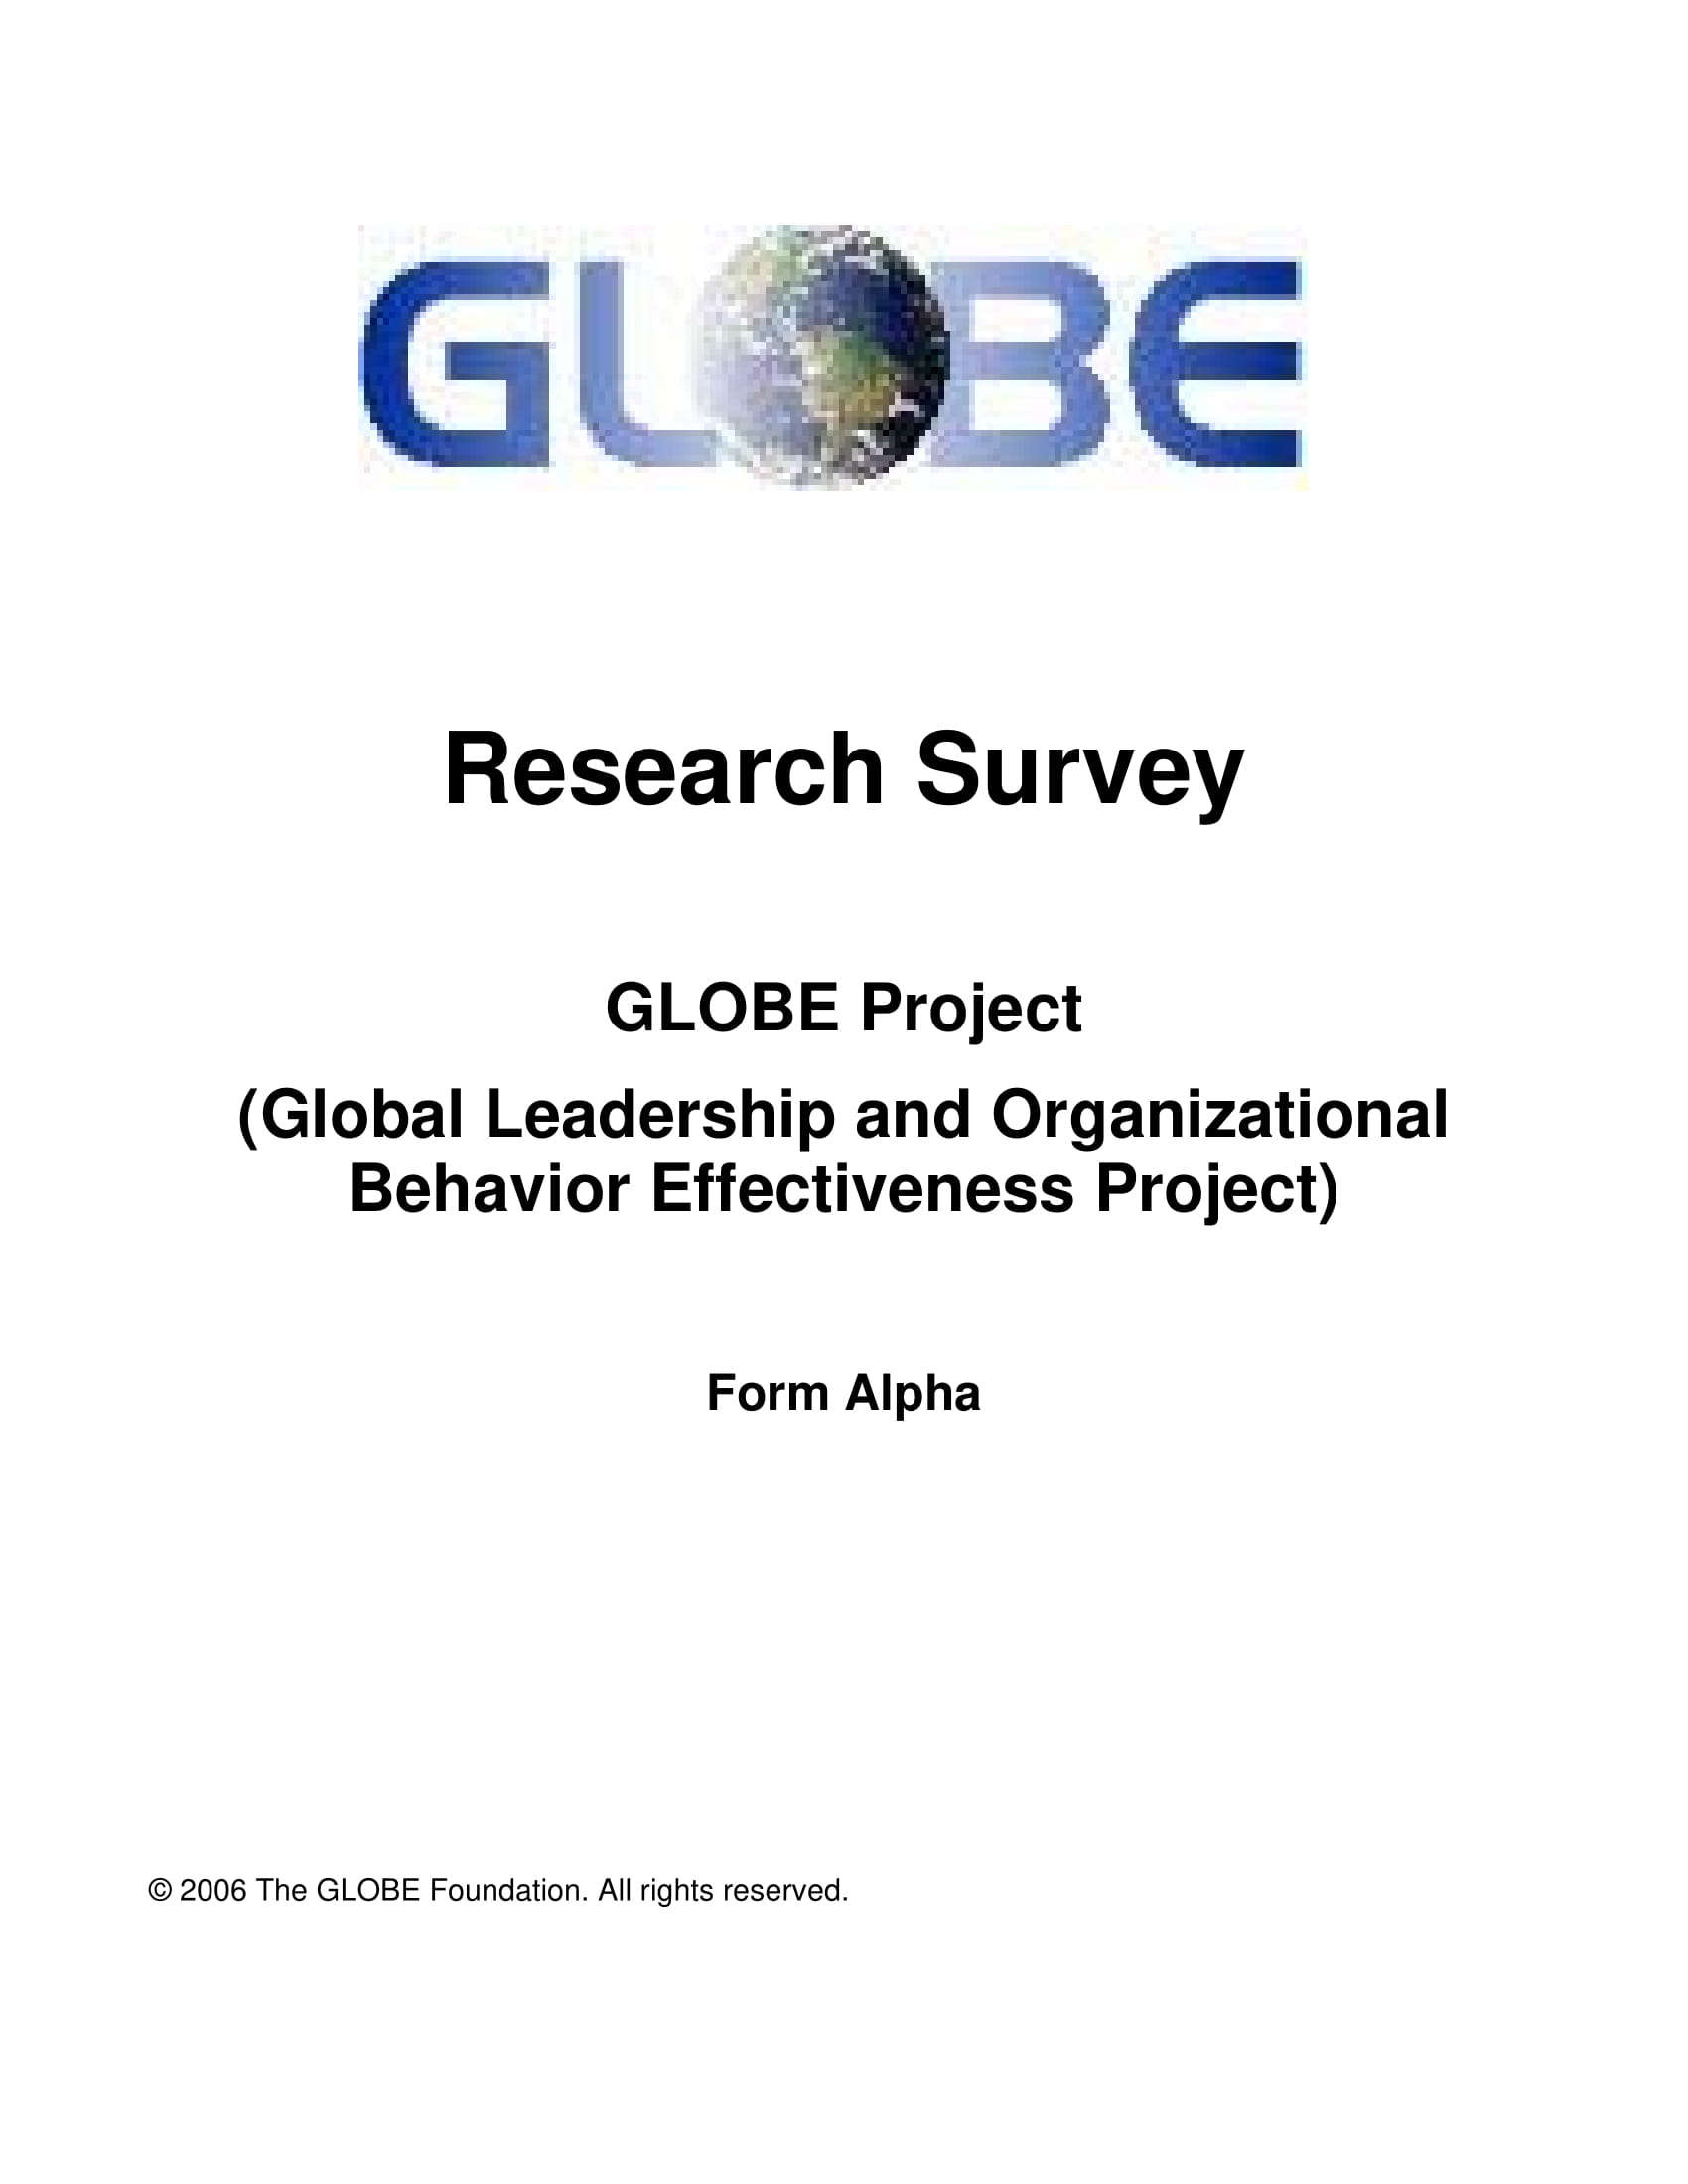 globe phase 2 alpha questionnaire 2006 01